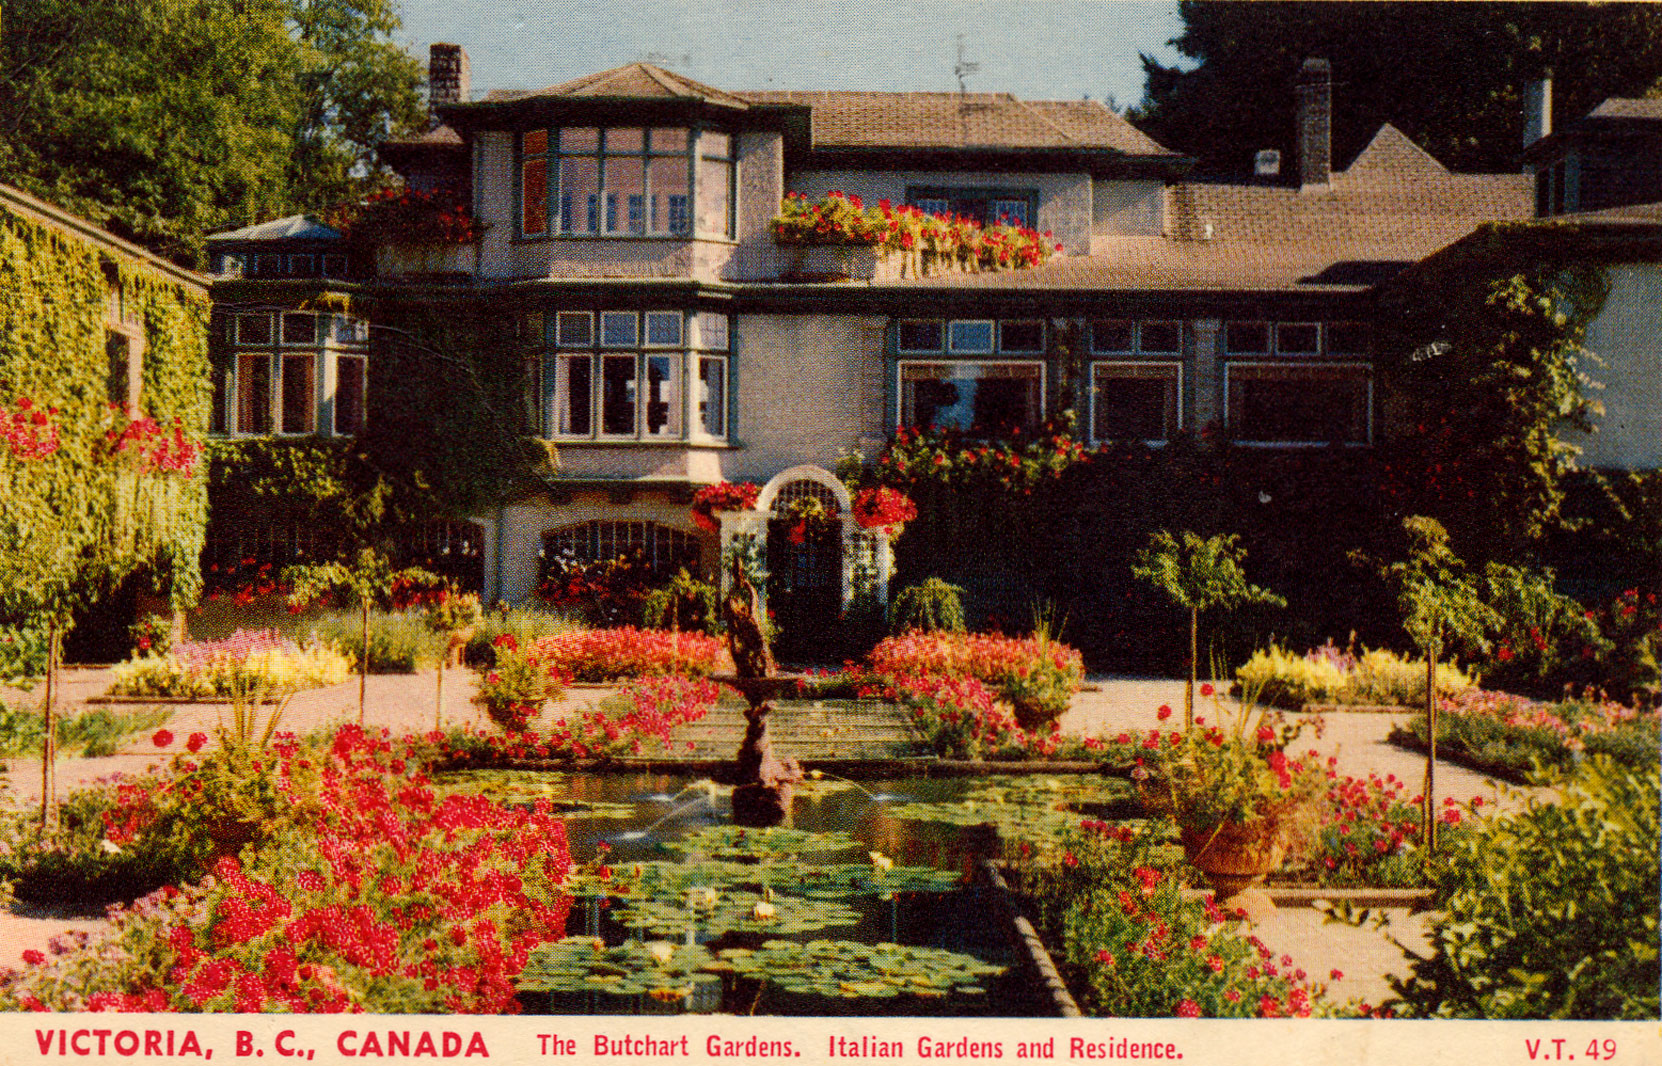 Postcard, postmarked May 1954, of the Italian Garden, looking south toward Benvenuto. (Author's collection)